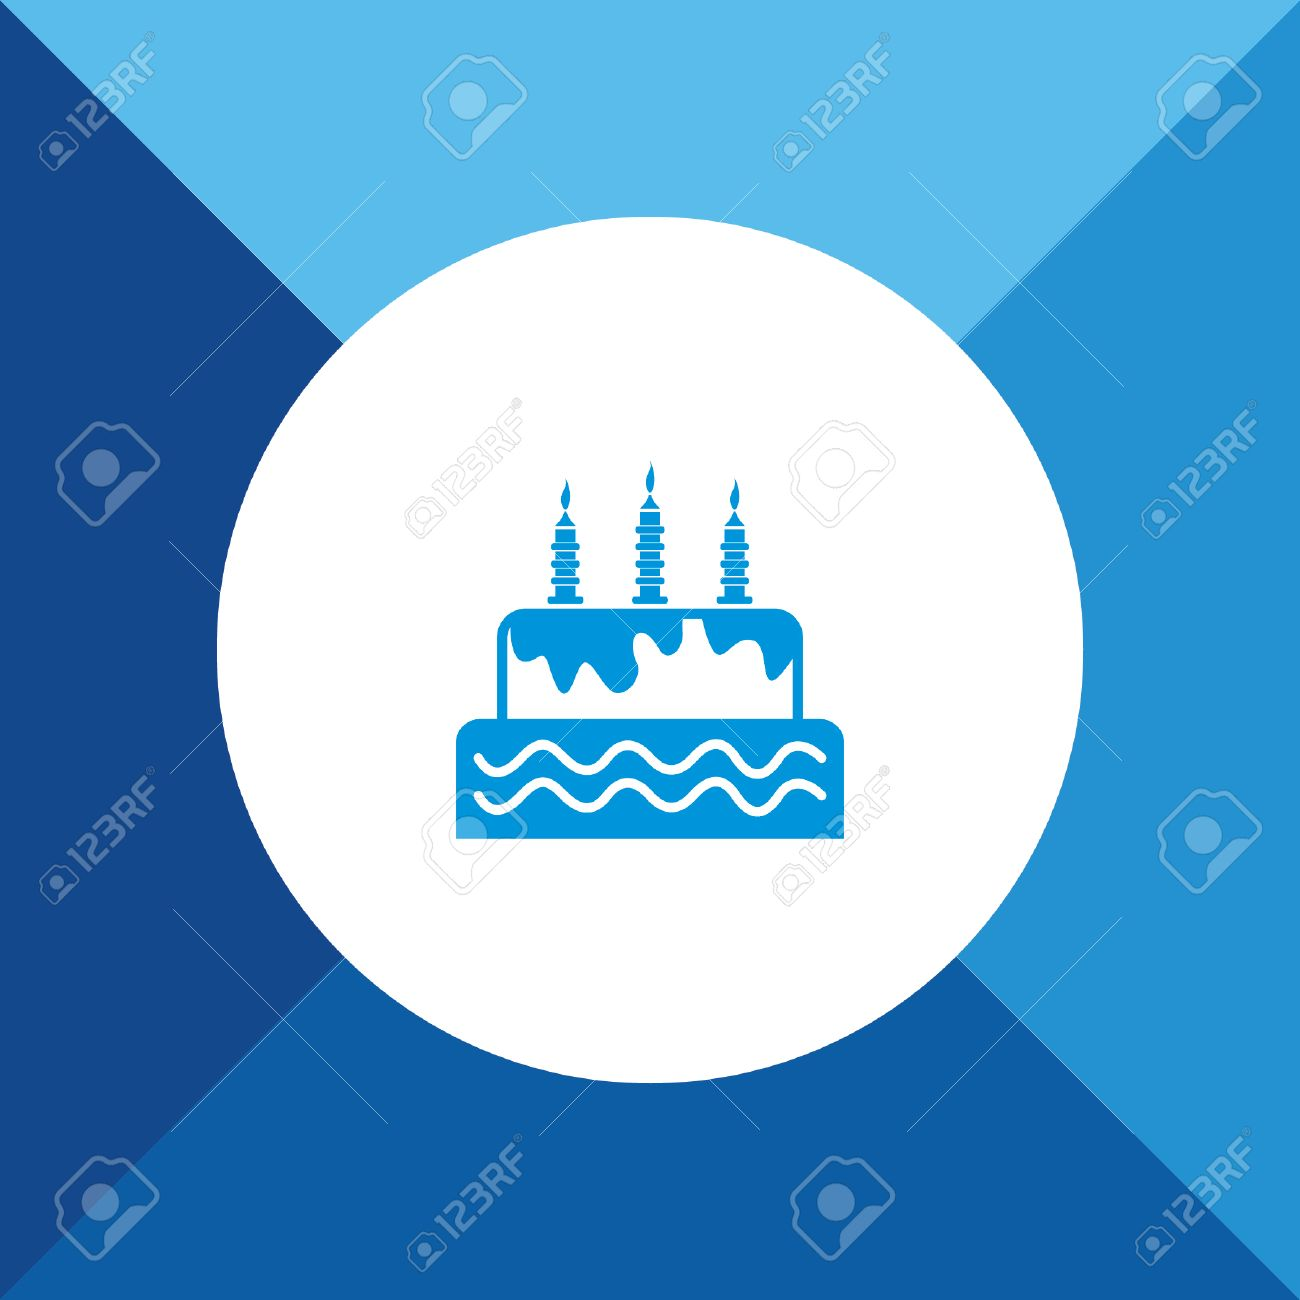 Birthday Cake Icon On Blue Color Background Royalty Free Cliparts